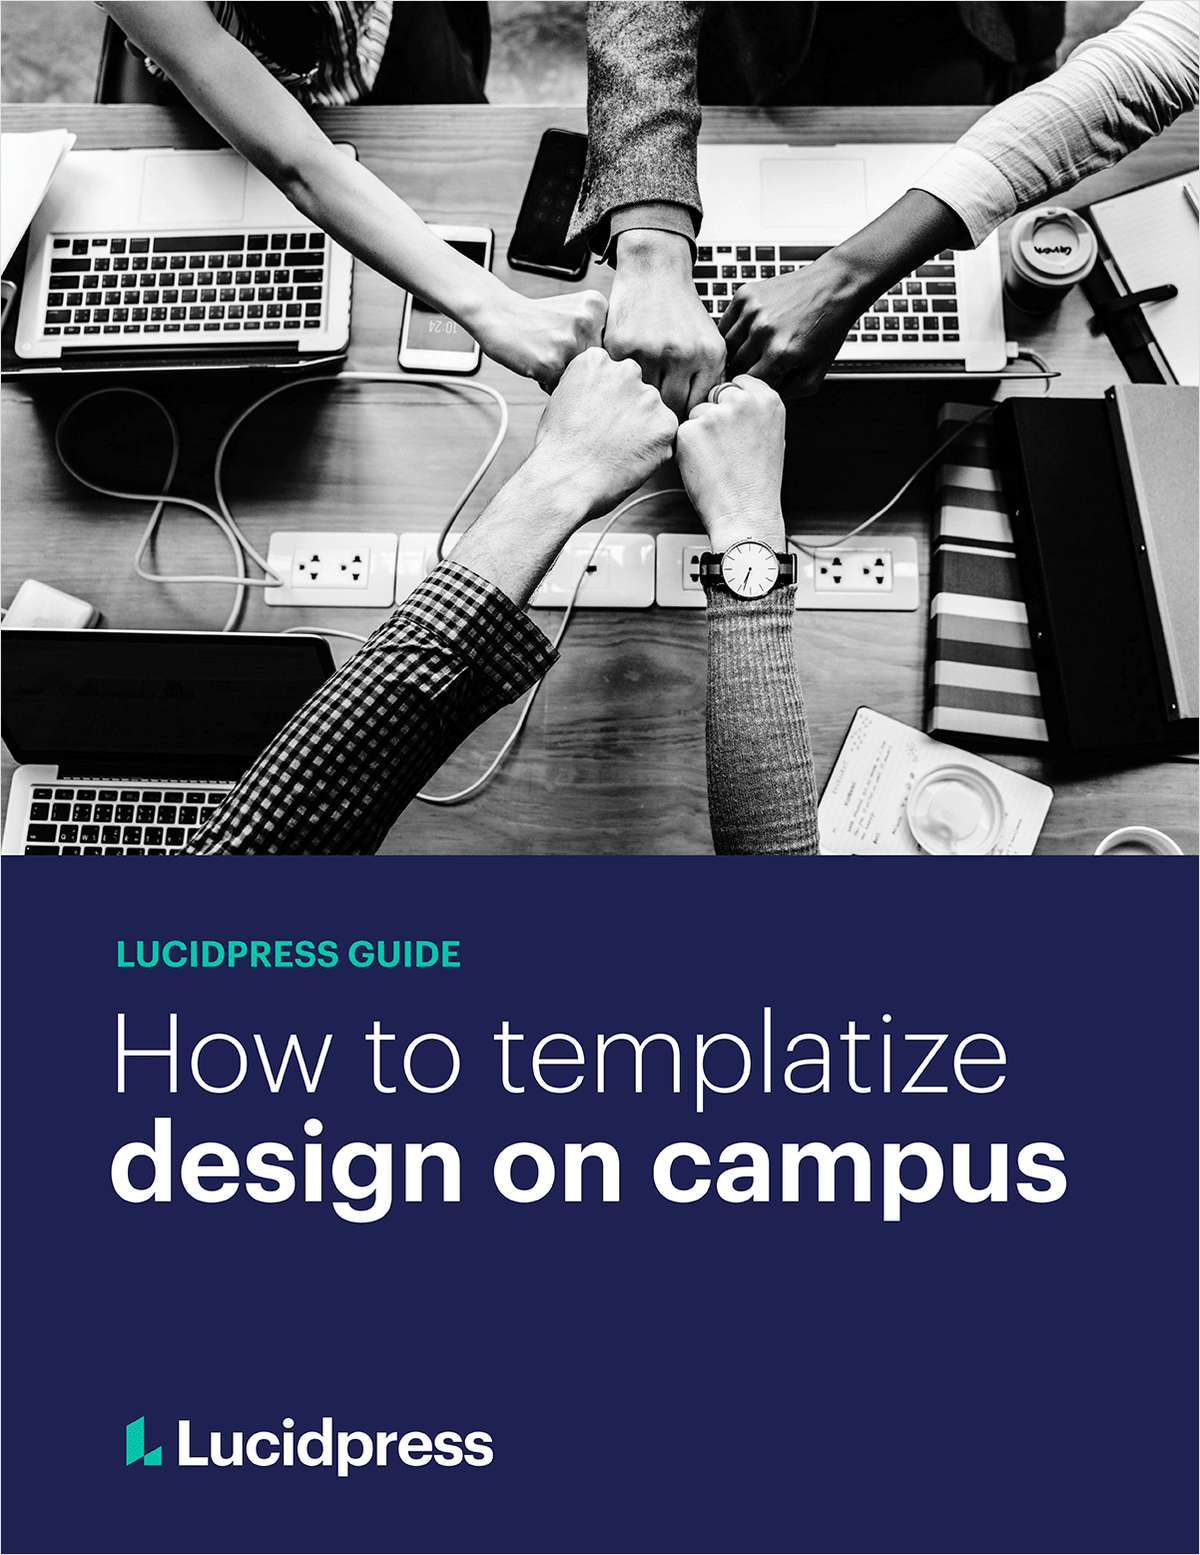 How to Templatize Design on Campus